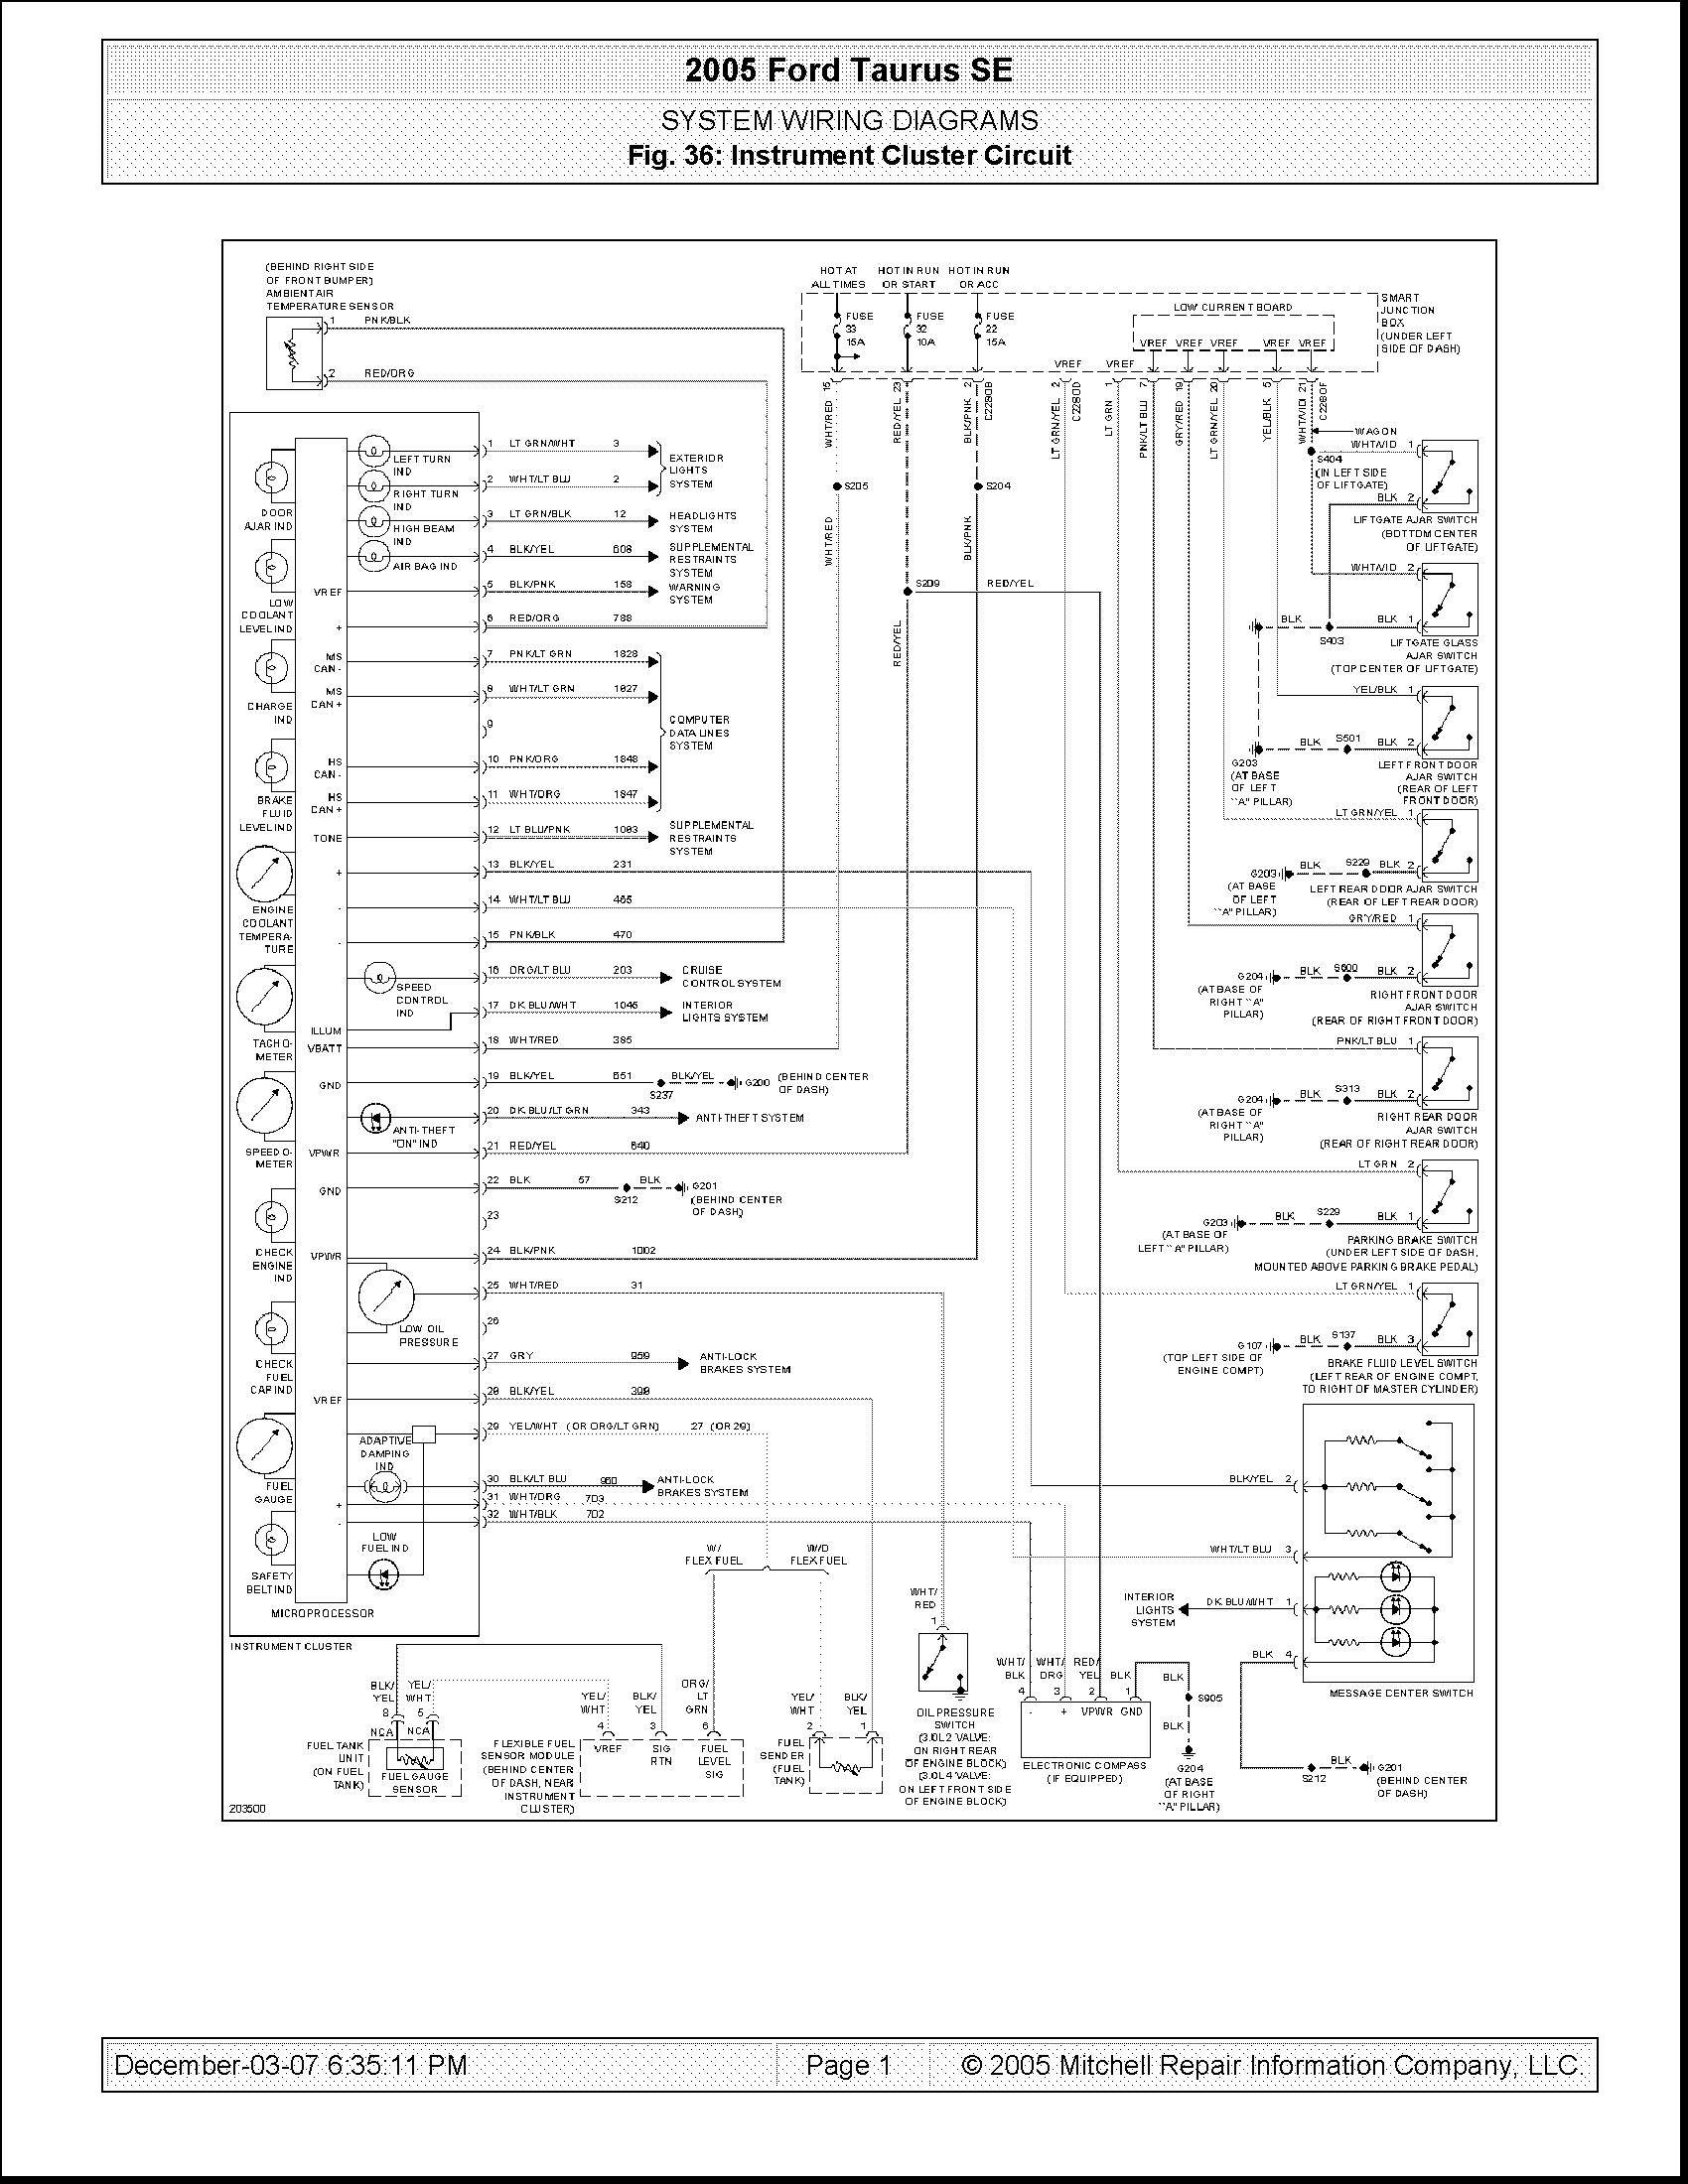 50806d1196724541 wiring diagram 05_taurus wiring harness 2000 ford taurus se diagram readingrat net 2002 ford taurus stereo wiring diagram at readyjetset.co